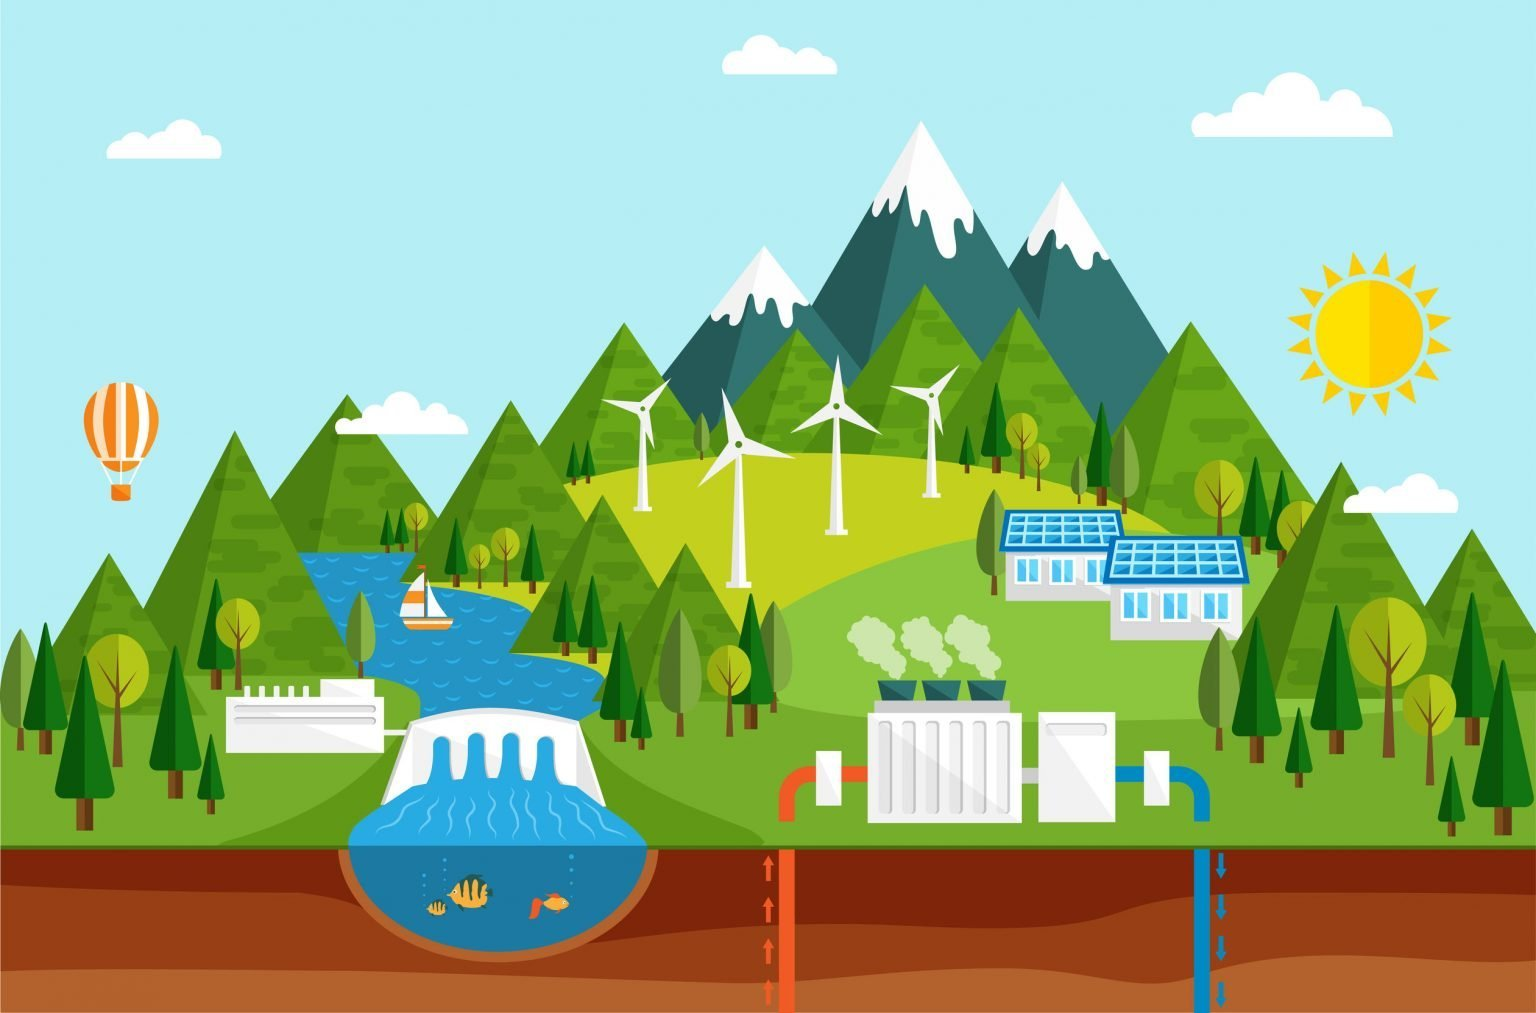 A cartoon diagram of solar energy alternatives, including wind turbines, hydro power, and geothermal systems displayed on the side of a mountain.